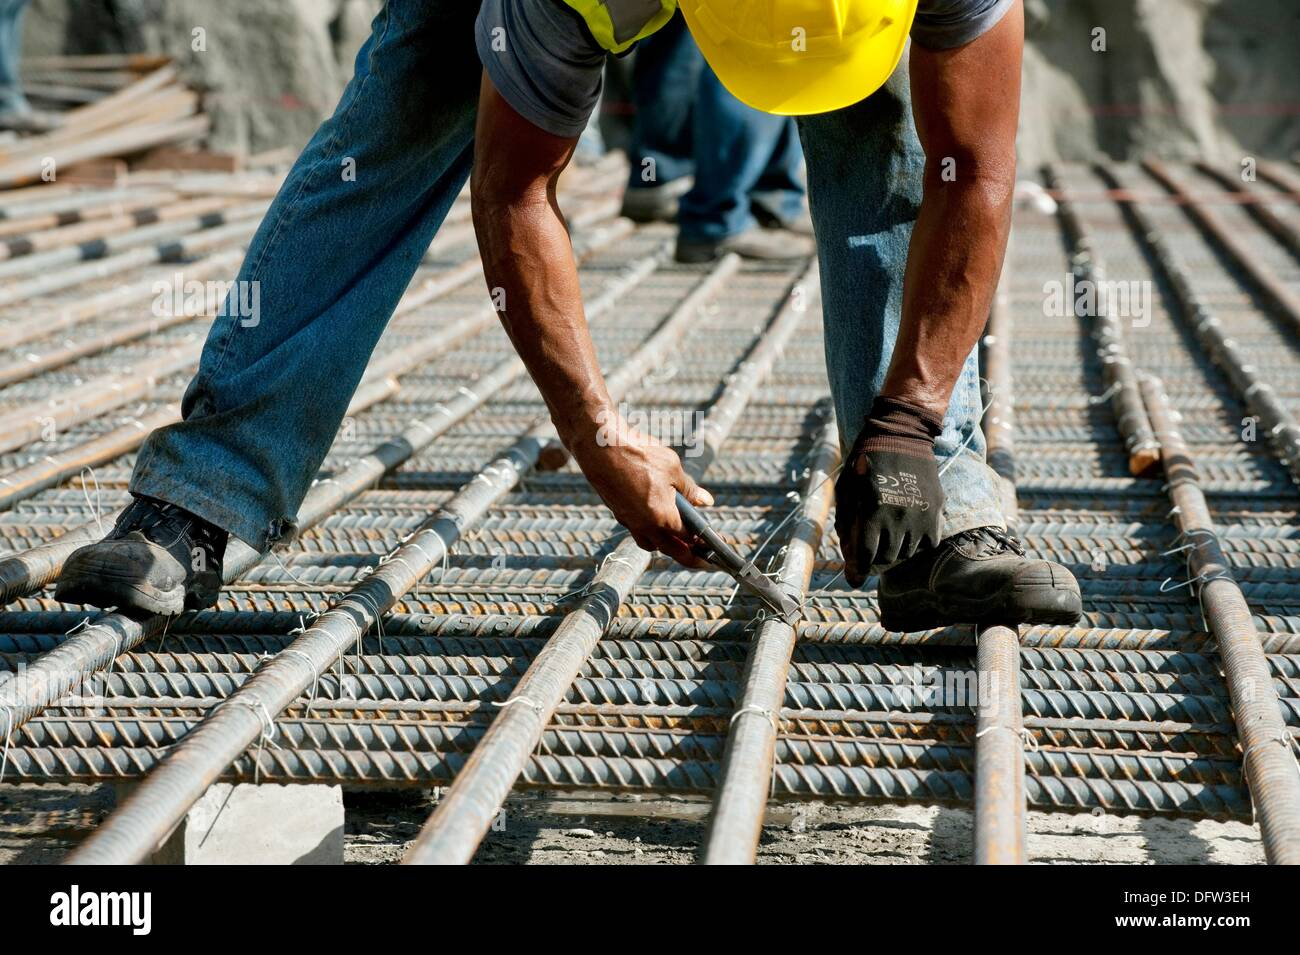 Man working on steel reinforcement for the Panama Canal expansion project  Panama Canal,Panama City,Panama,Central America - Stock Image